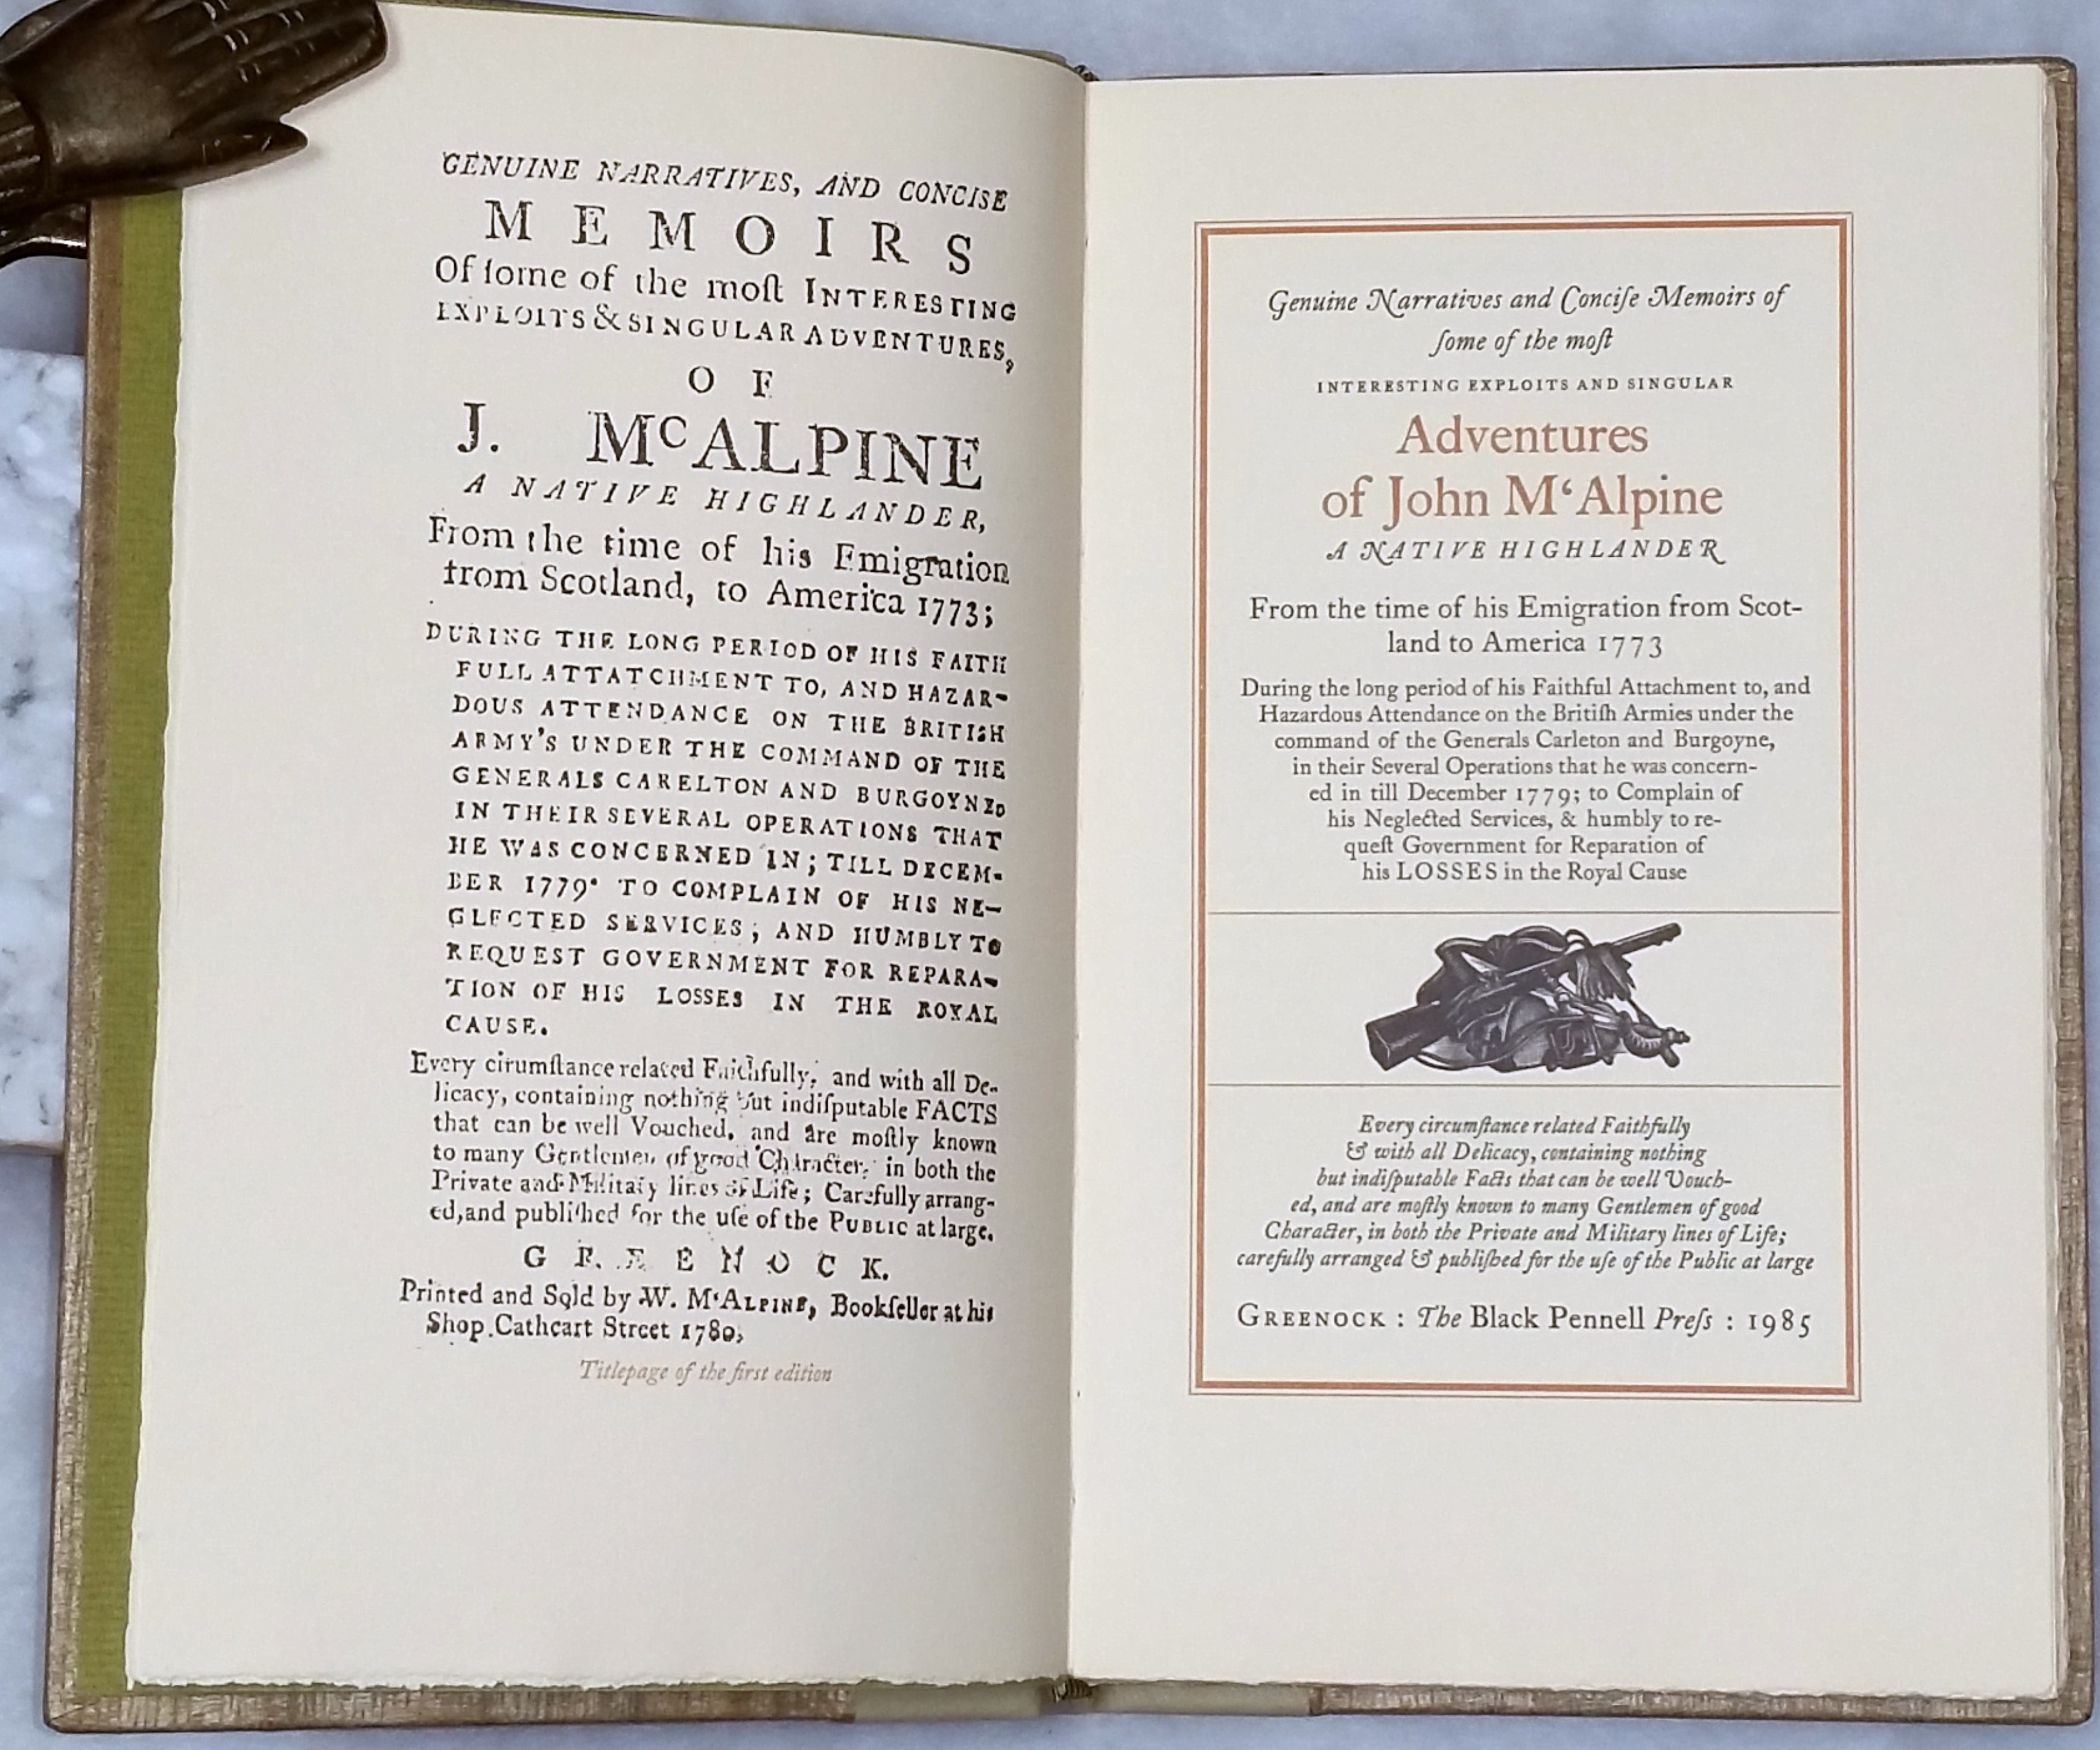 Image for Genuine Narratives and Concise Memoirs of Some of the Most Interesting Exploits and Singular Adventures of John M'Alpine, A Native Highlander, From the time of This Emigration from Scotland to American, 1773...